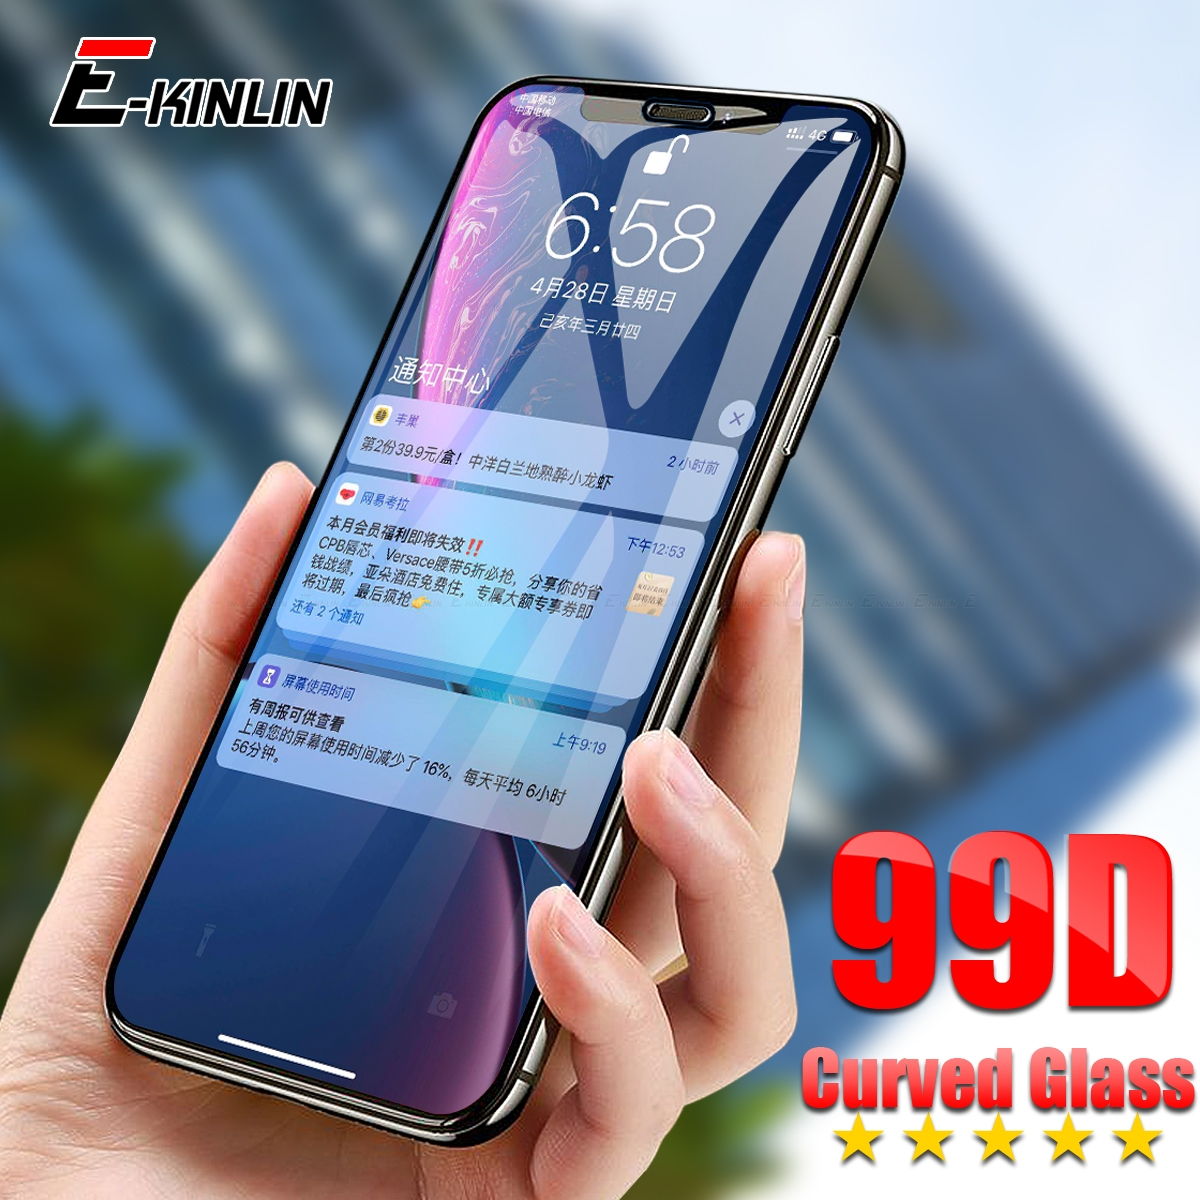 99D Curved Tempered Glass Screen Protector On For IPhone 8 7 6 6S Plus Protective Glass For IPhone 11 Pro XS Max X XR Glass Film